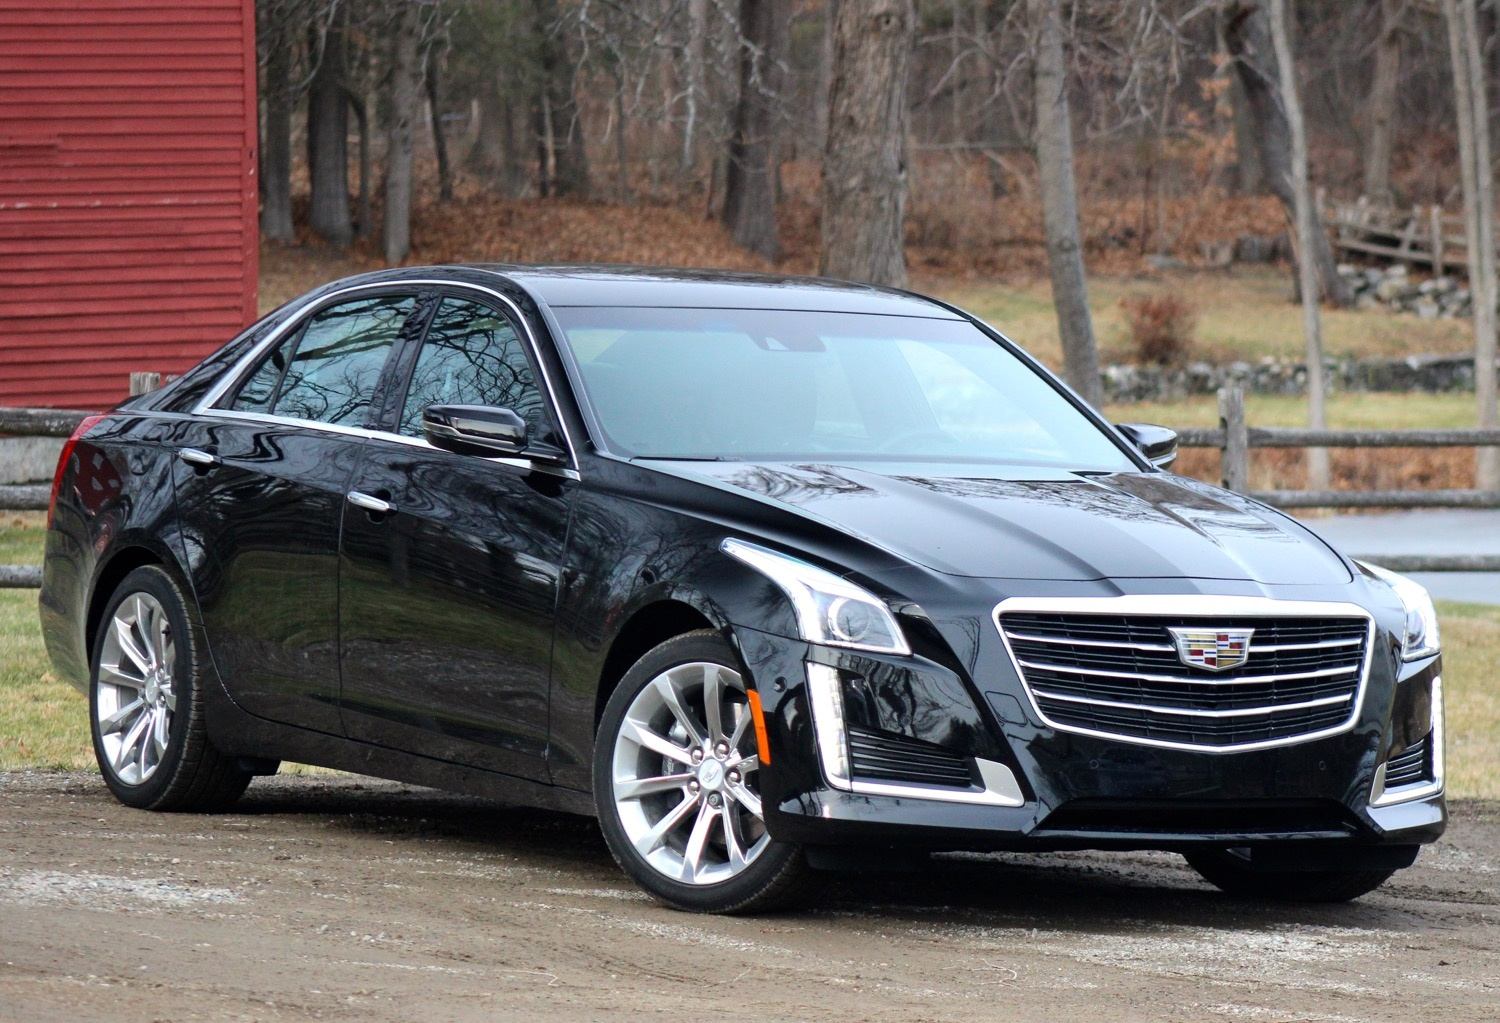 Used Cadillac Cts Coupe >> 2016 Cadillac CTS - Test Drive Review - CarGurus